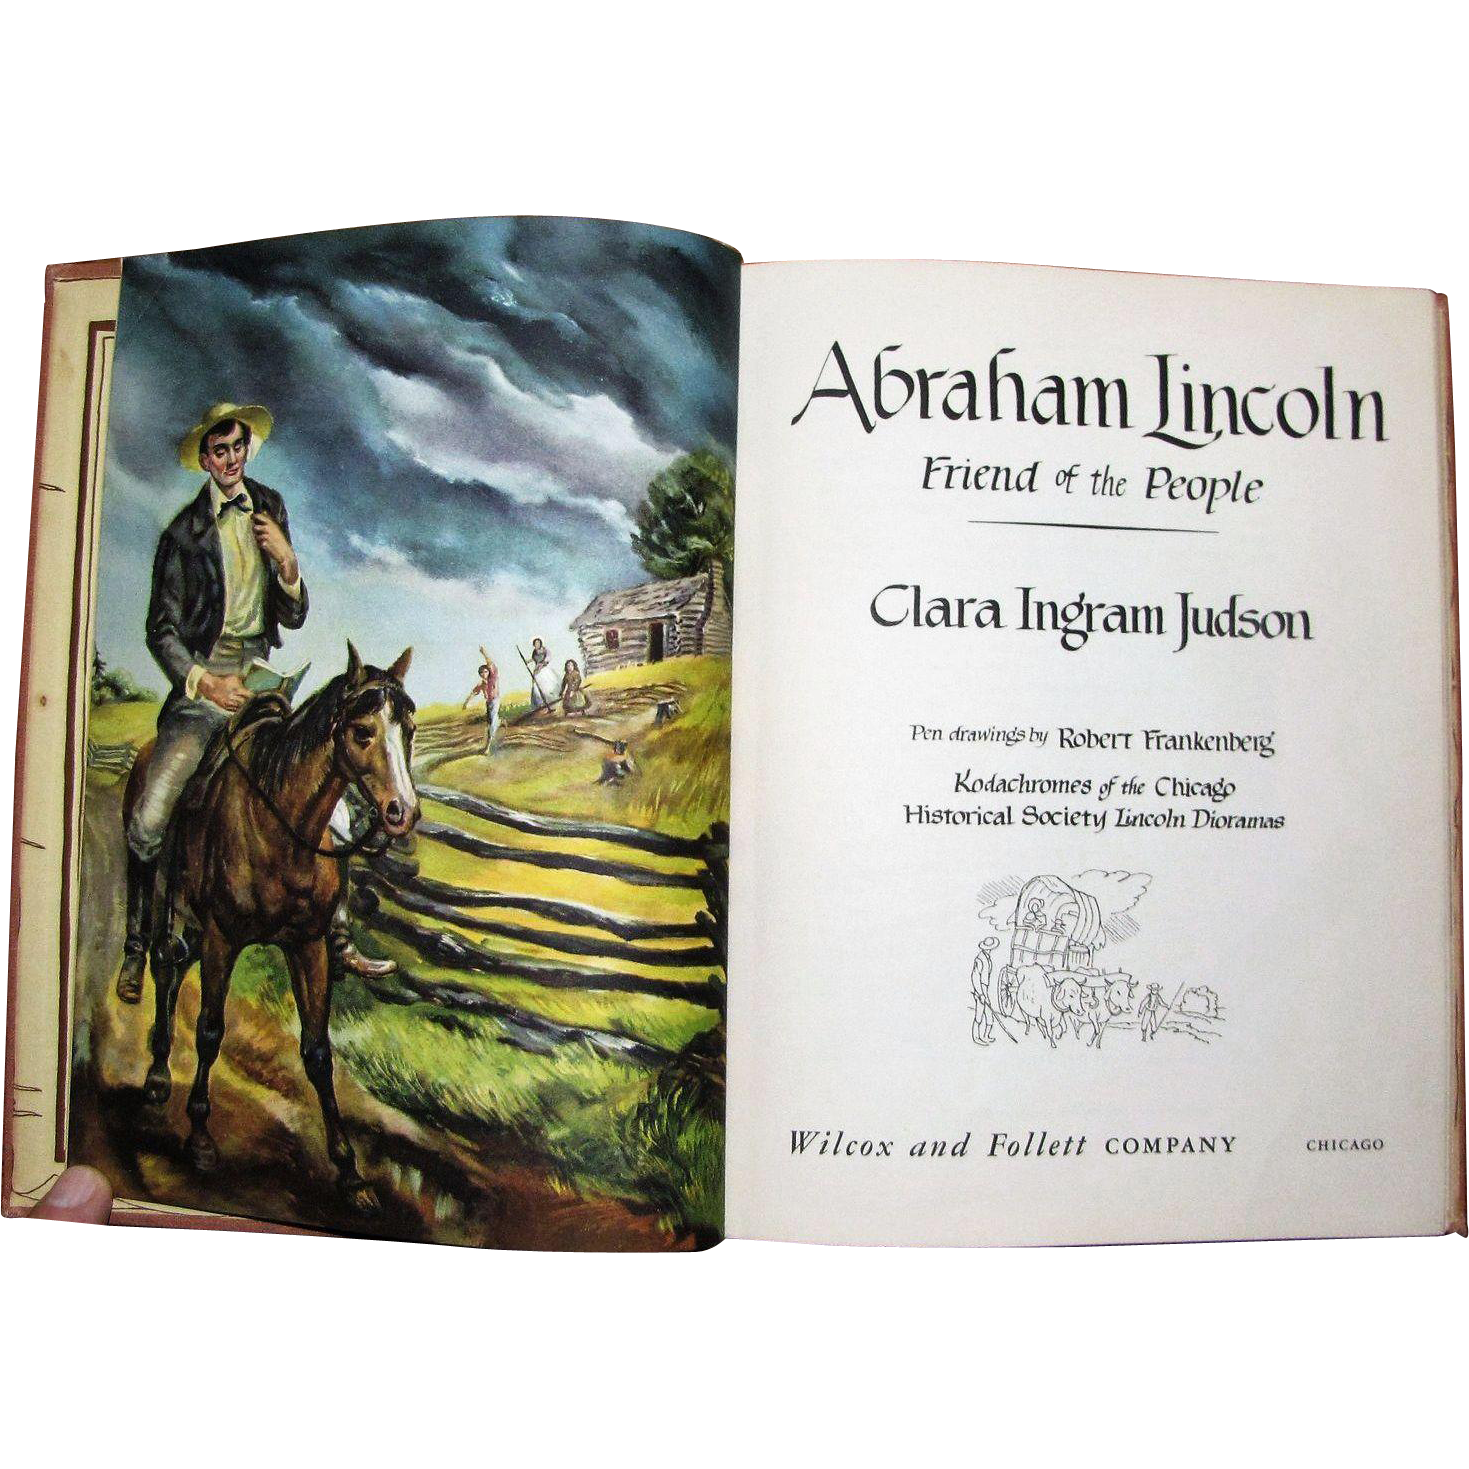 Abe Lincoln Books: Abraham Lincoln, Friend Of The People By Clara Ingram